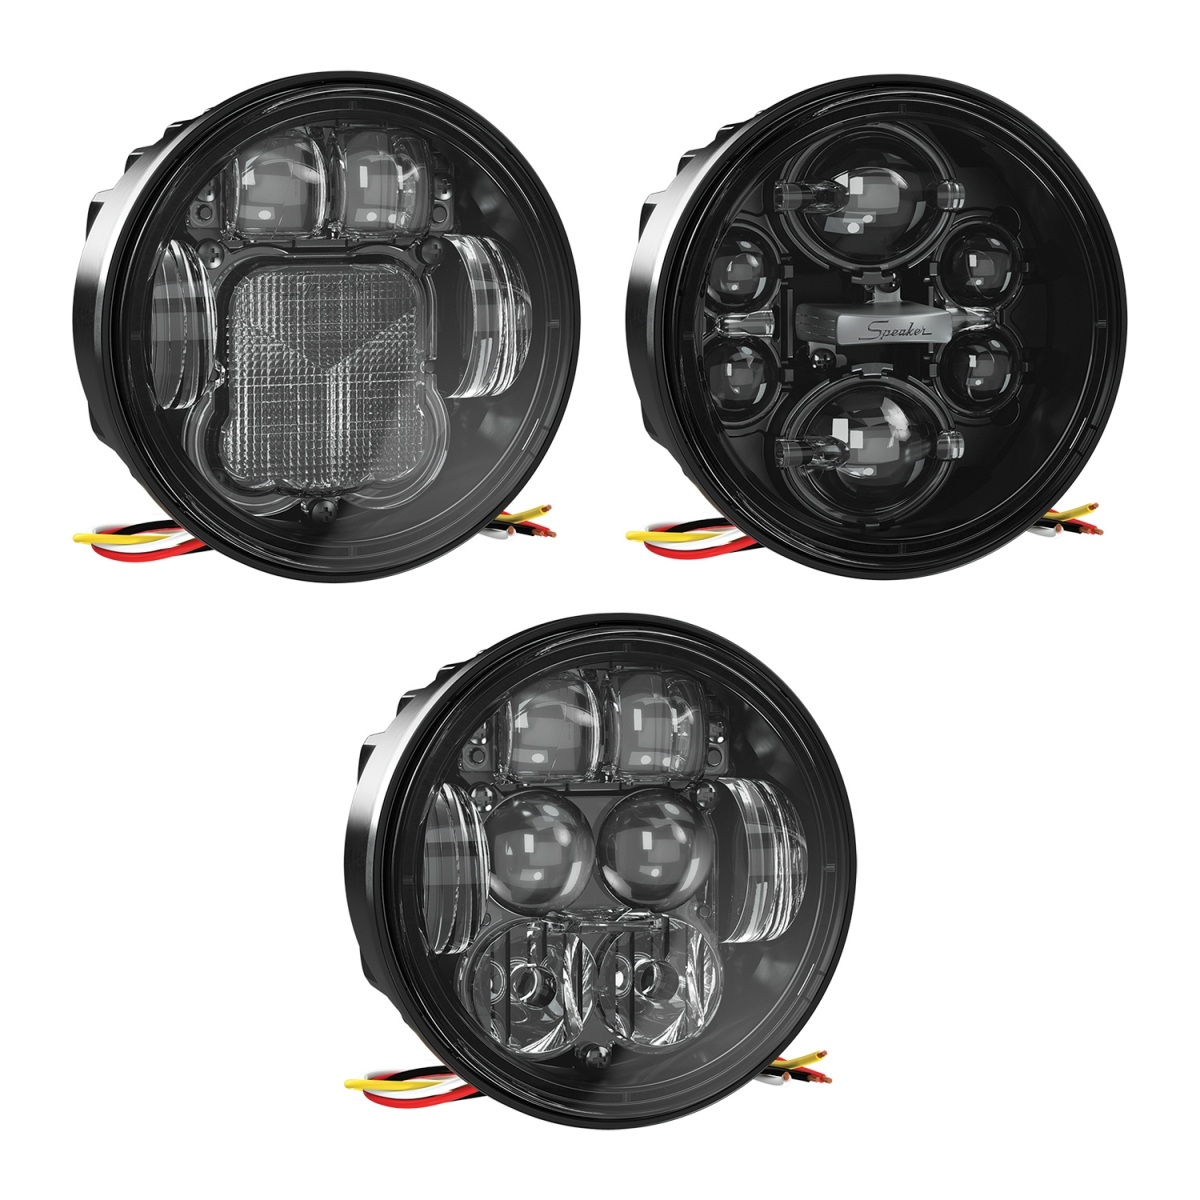 LED Headlights – Model 6130 Evolution